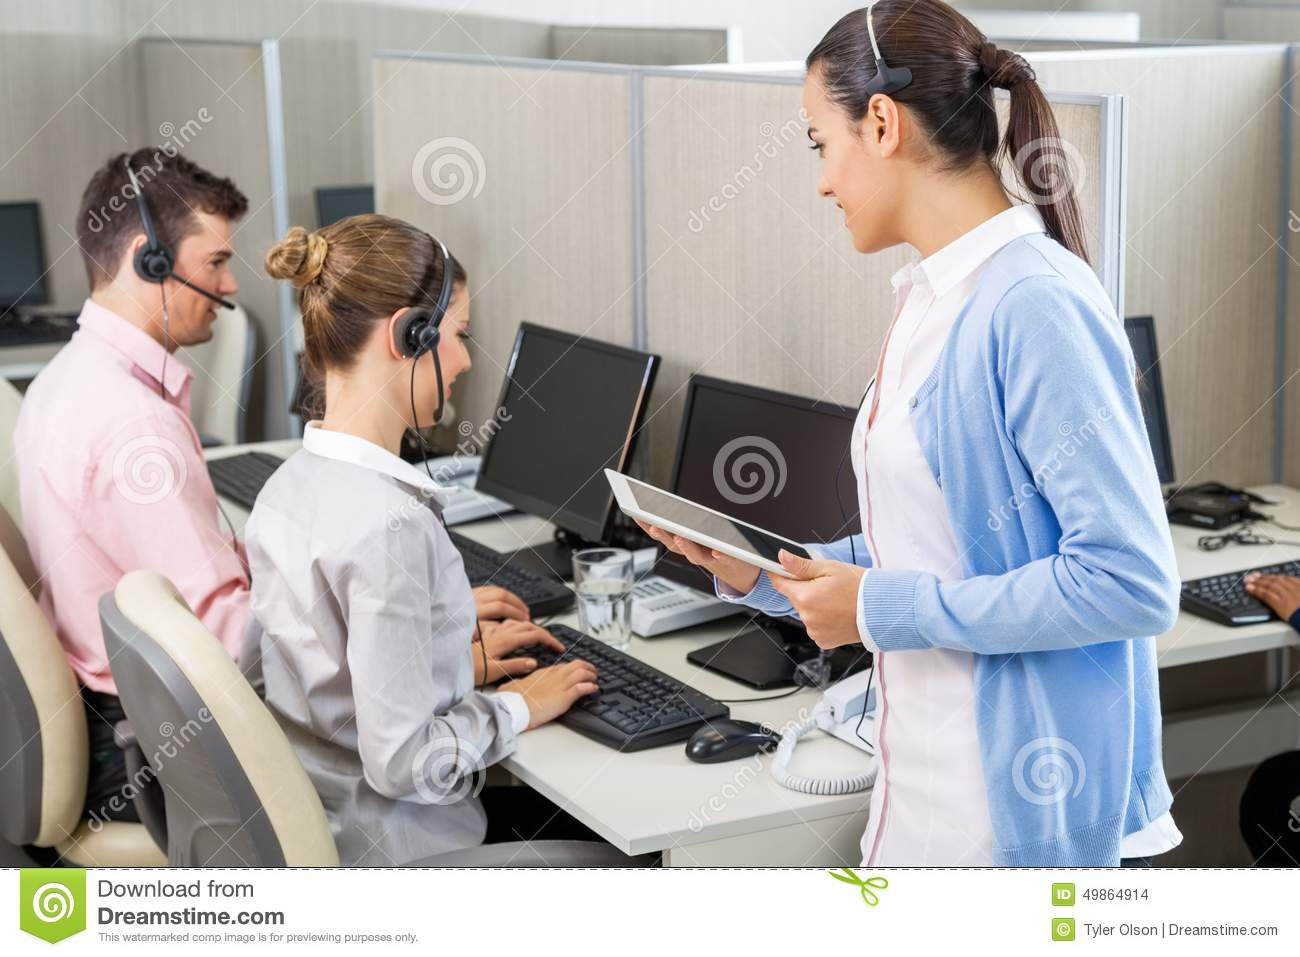 Customer Service Executive Talking To Colleagues Stock Photo  Image 49864914